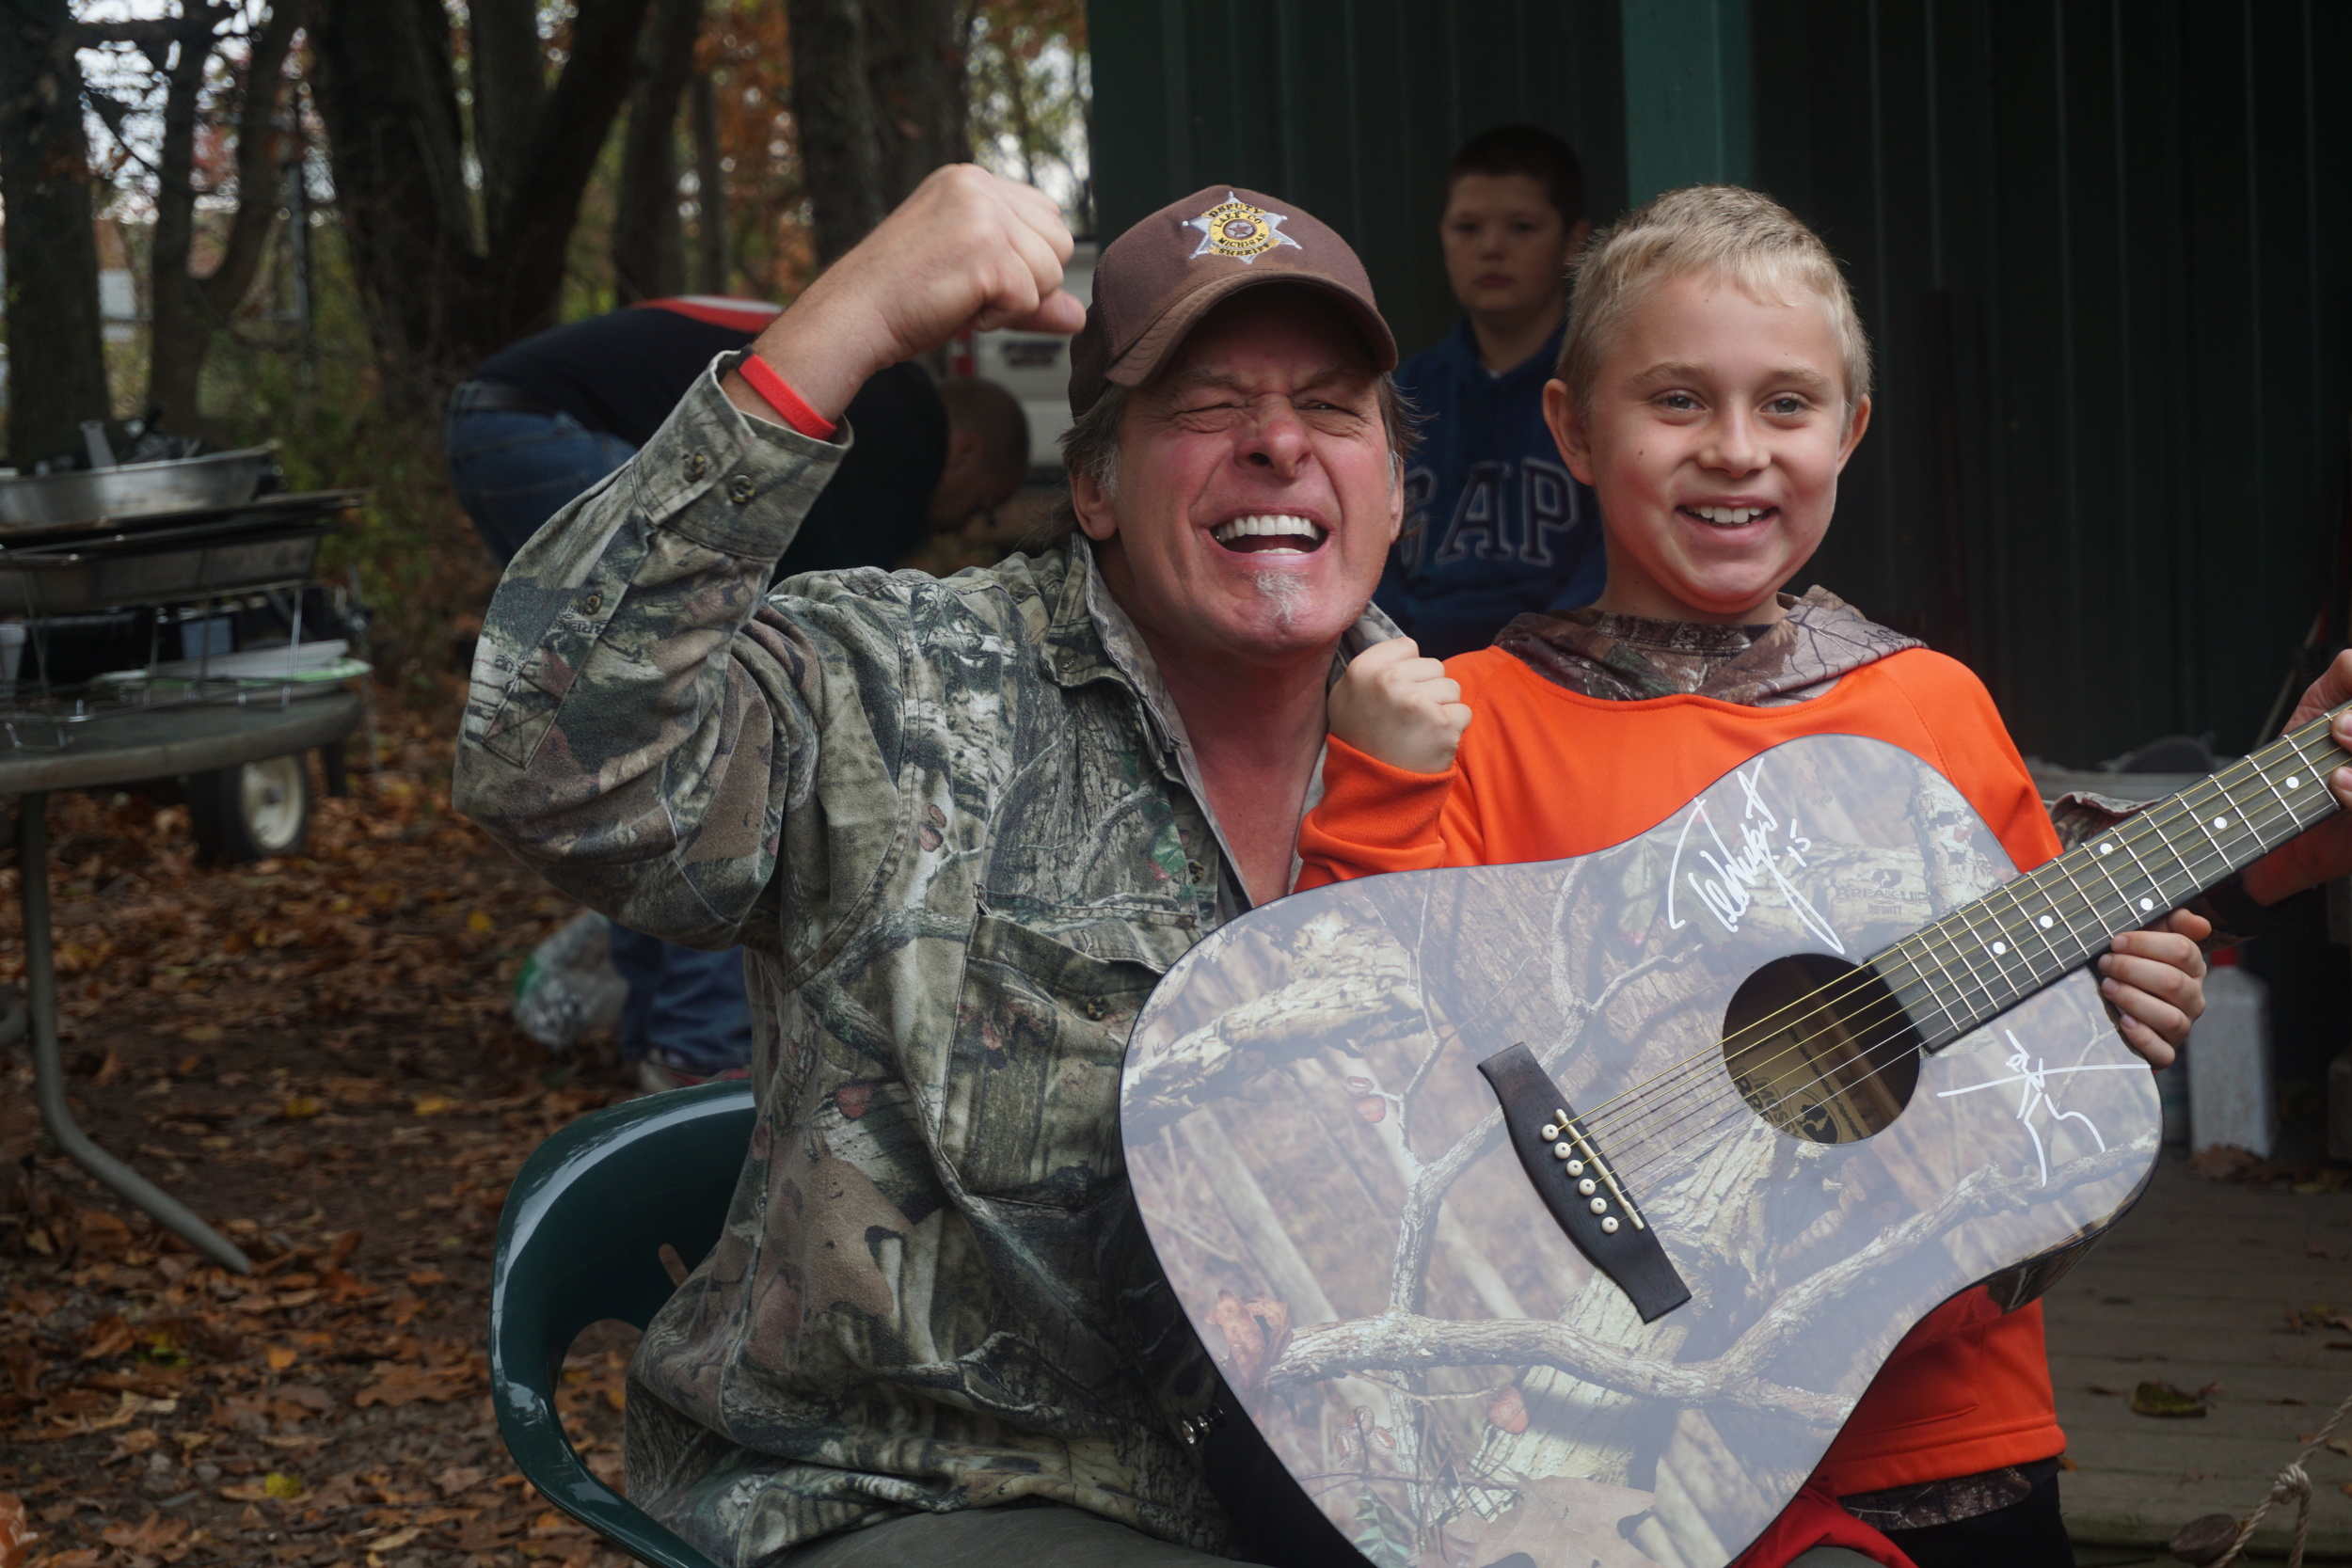 Braedan and Ted Nugent at his ranch while Wild Hog hunting. We all had an amazing time at Sunrize Safari's in Jackson MI.